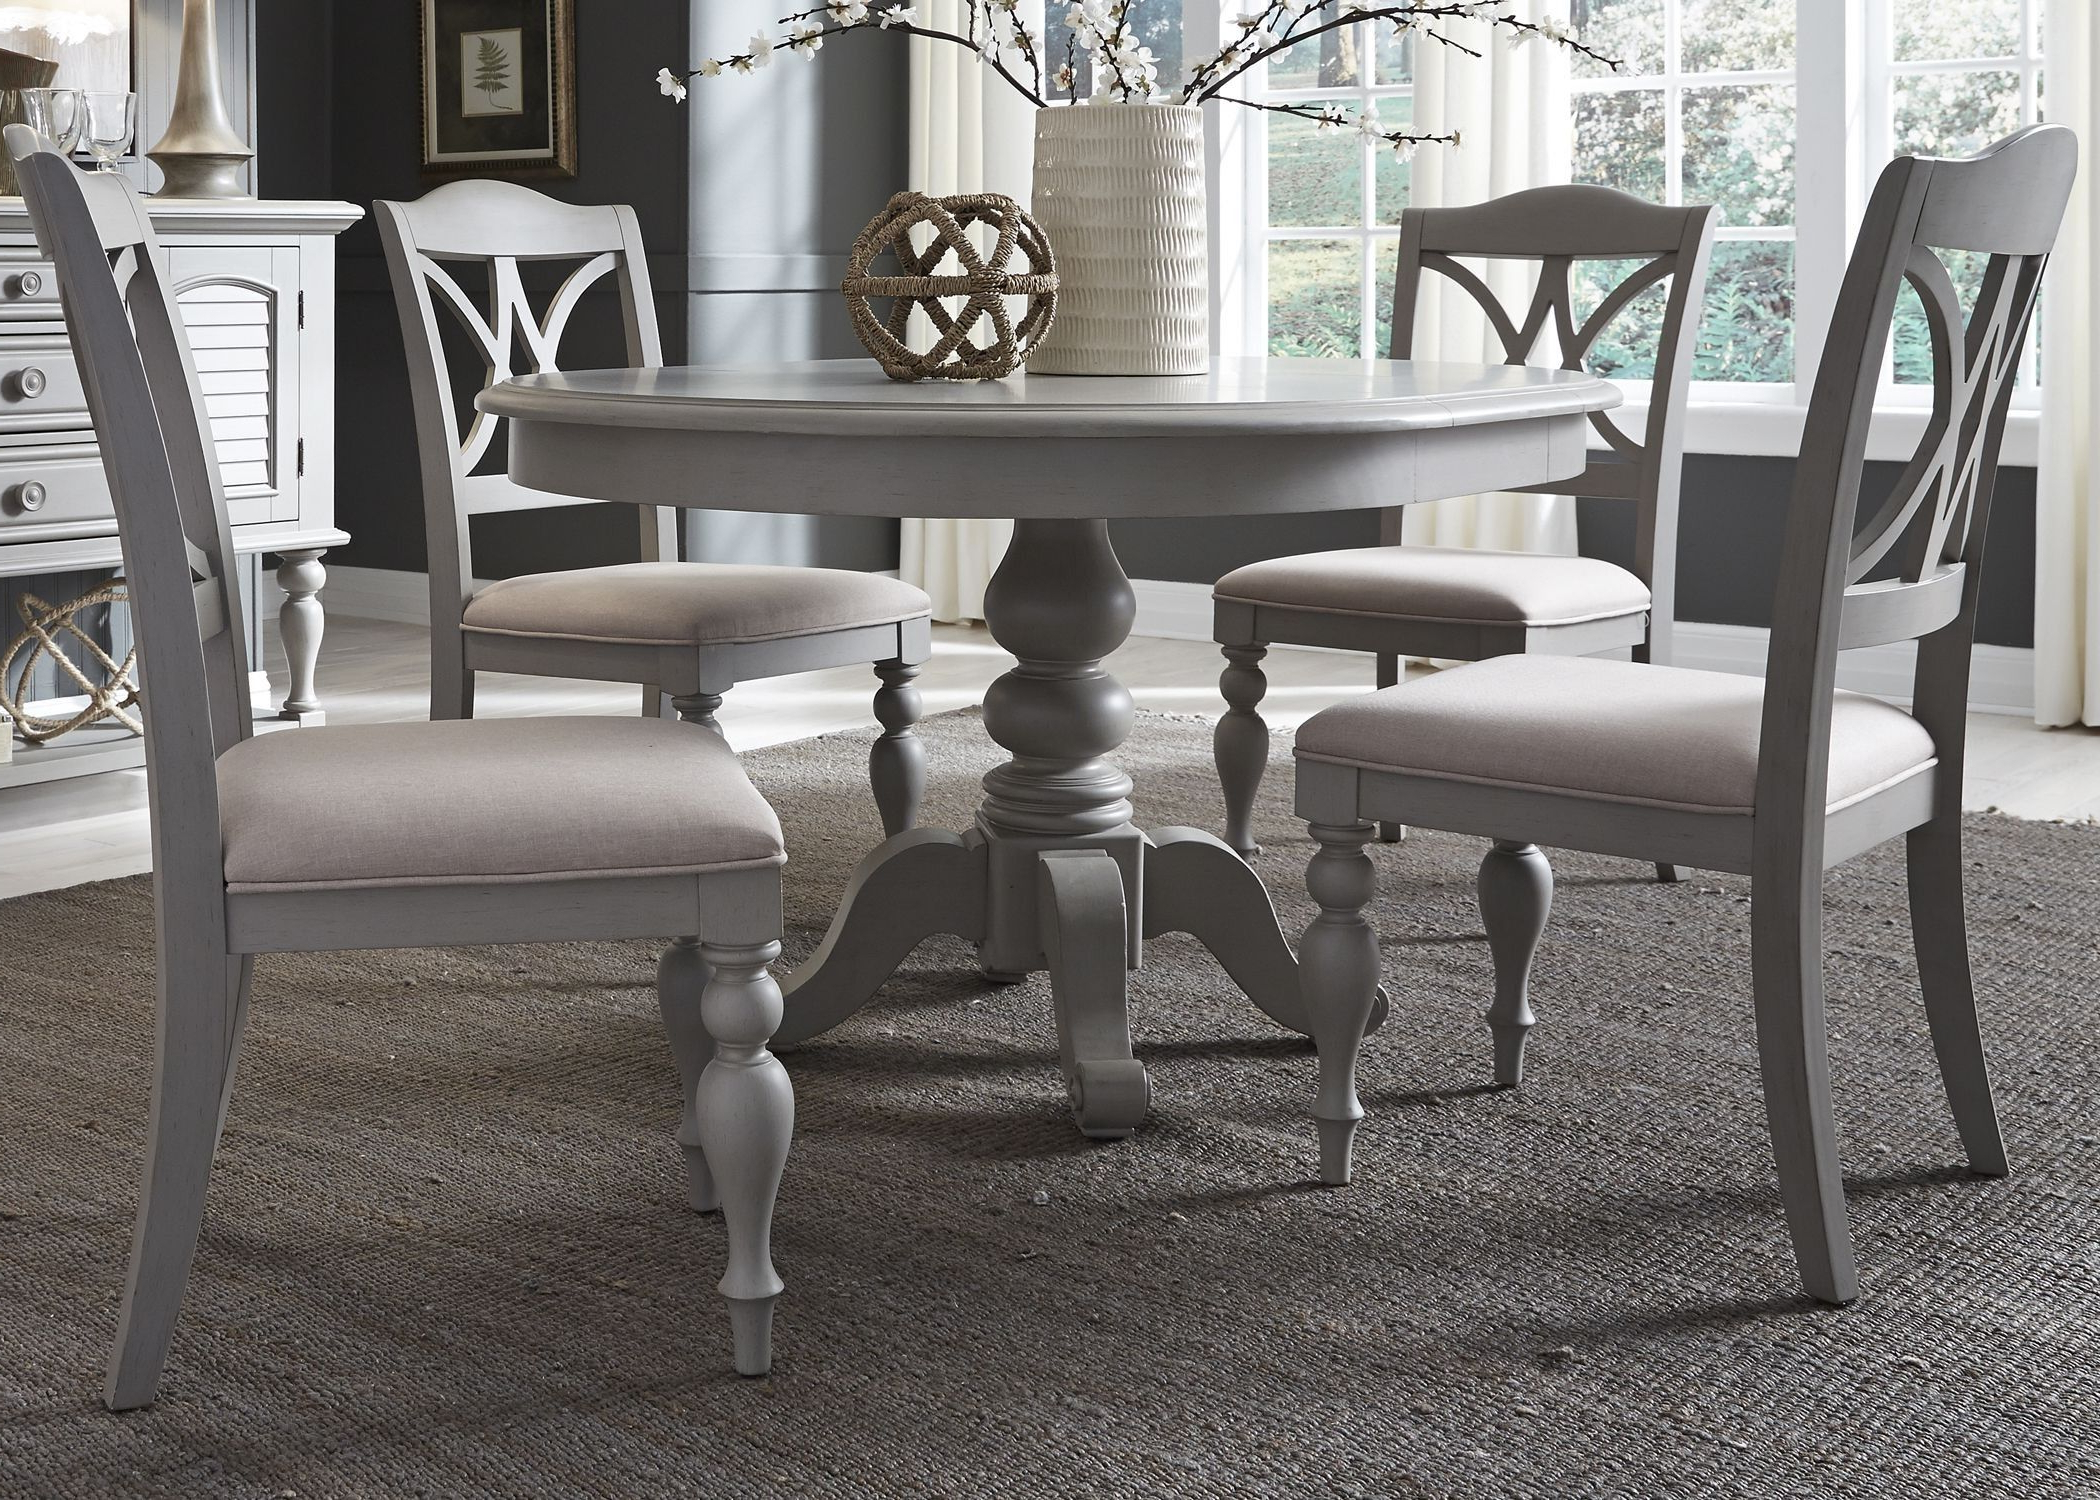 Most Popular Summer House Dove Grey Round Extendable Dining Table In 2019 In Ingred Extending Dining Tables (View 2 of 25)